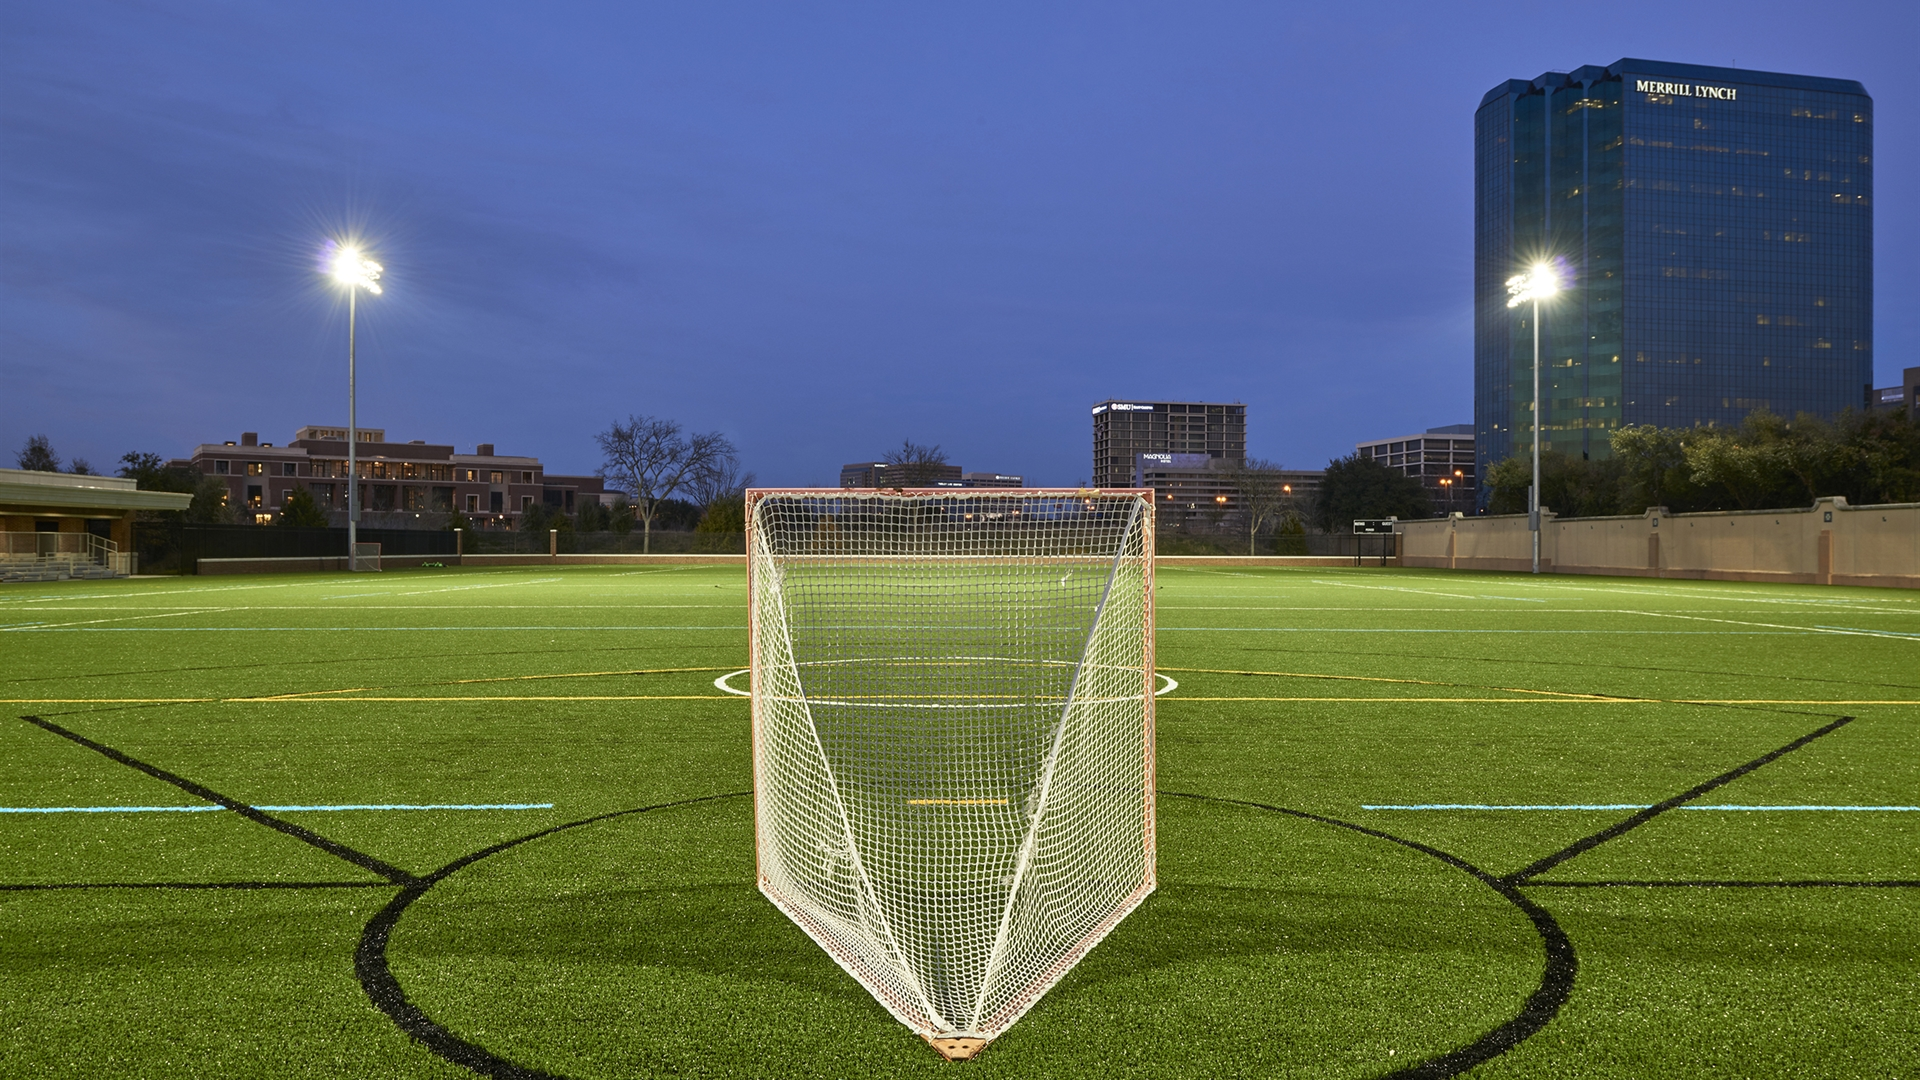 SMU – Southeast Development: Crum Lacrosse and Sports Field Building